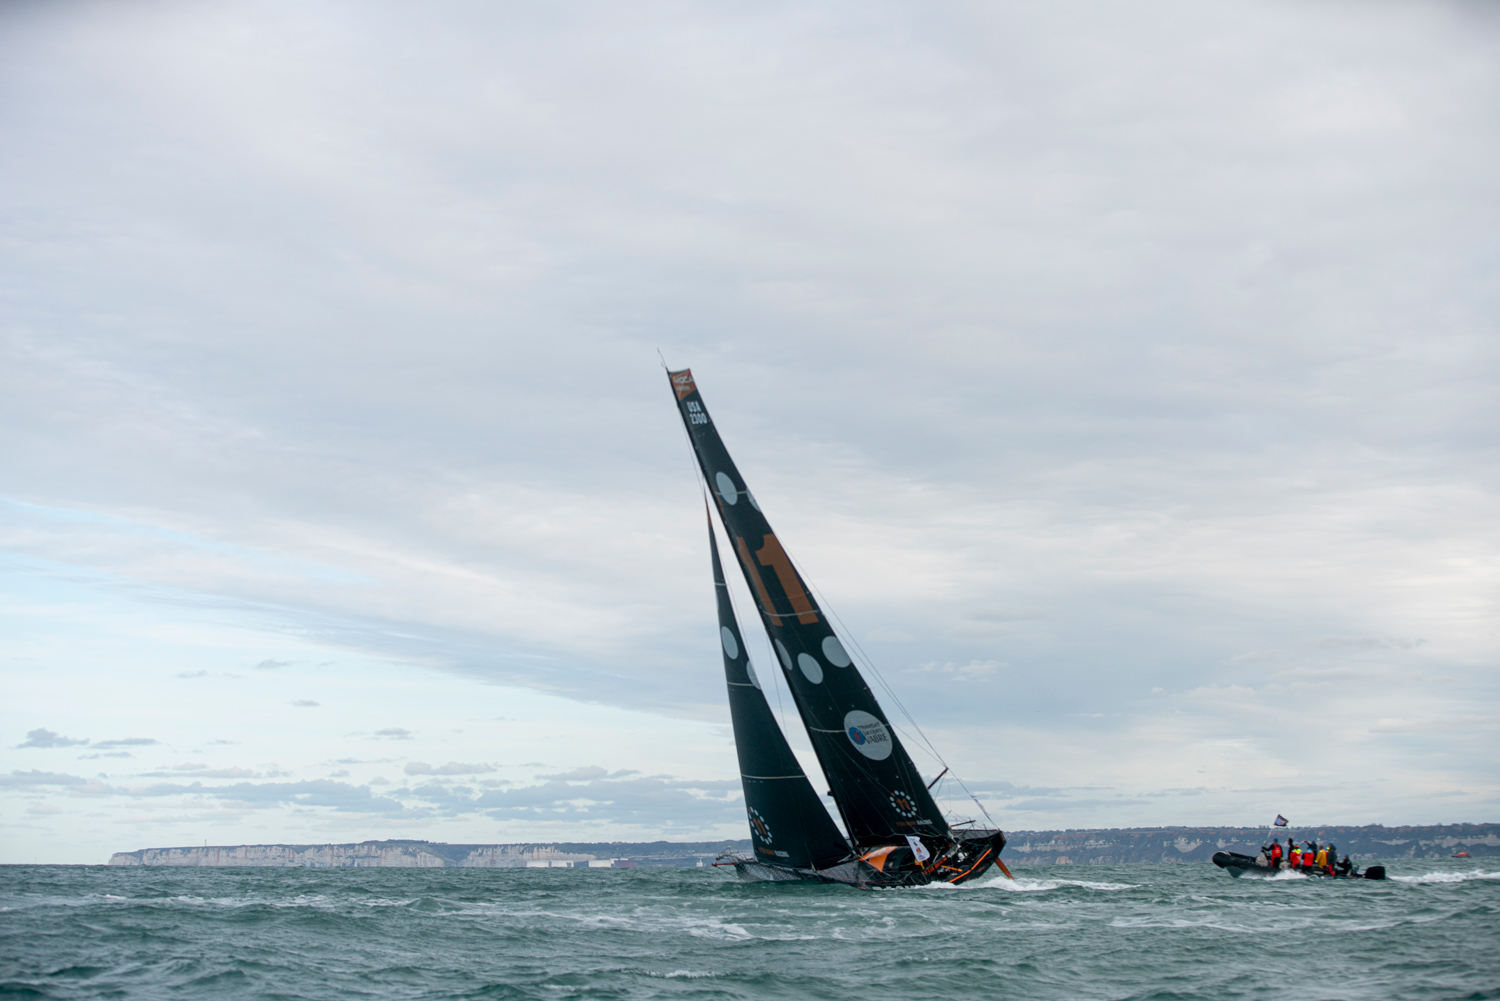 11th Hour racing team depart for brazil in the transat jacques vabre